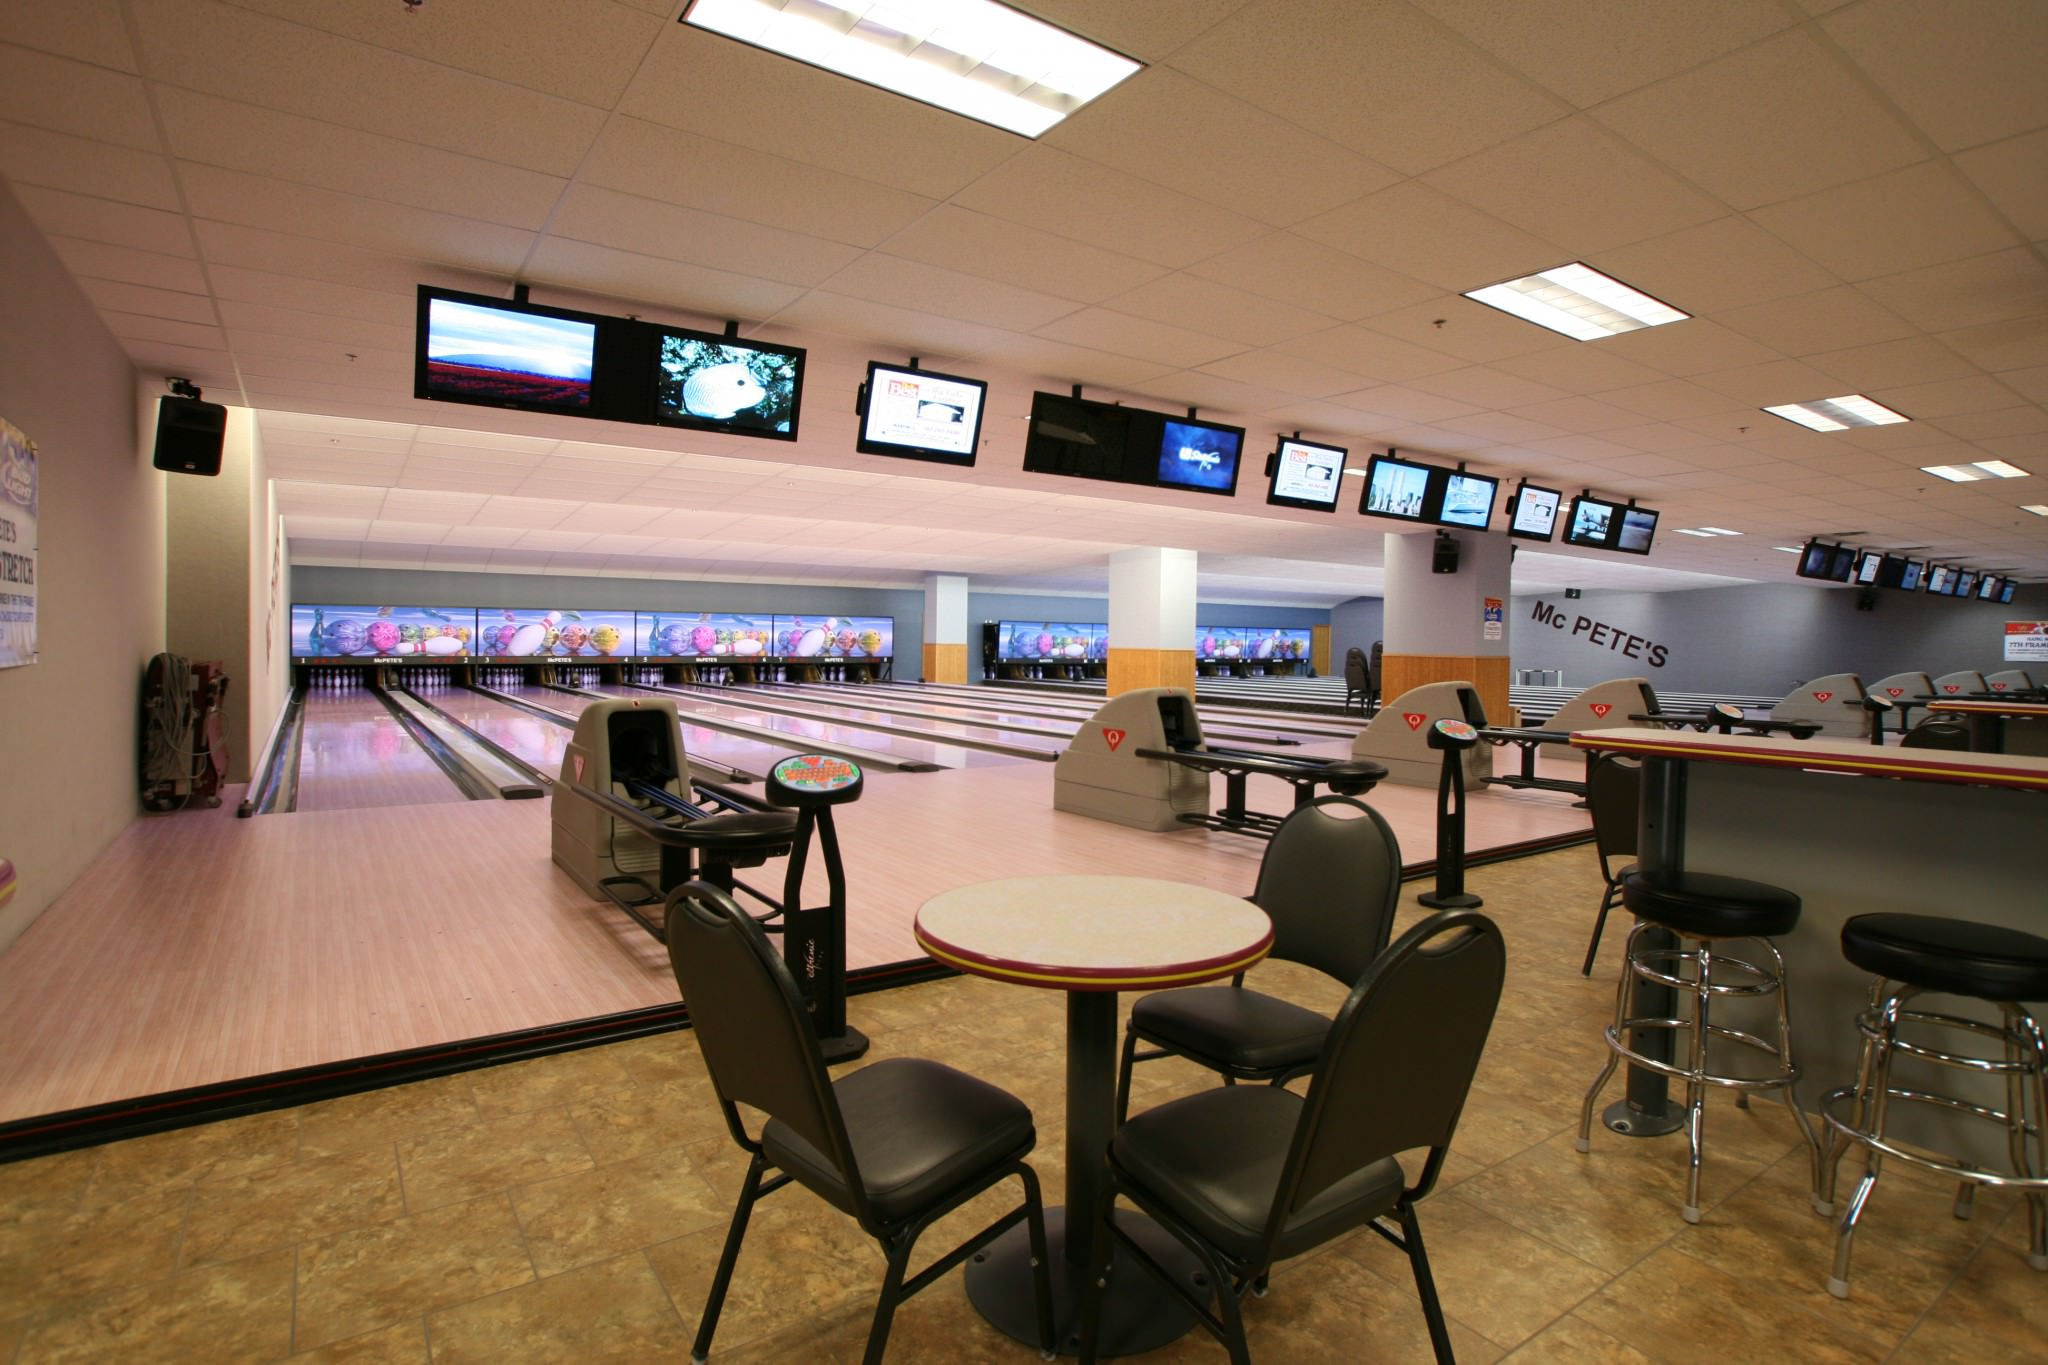 McPete's bowling alley